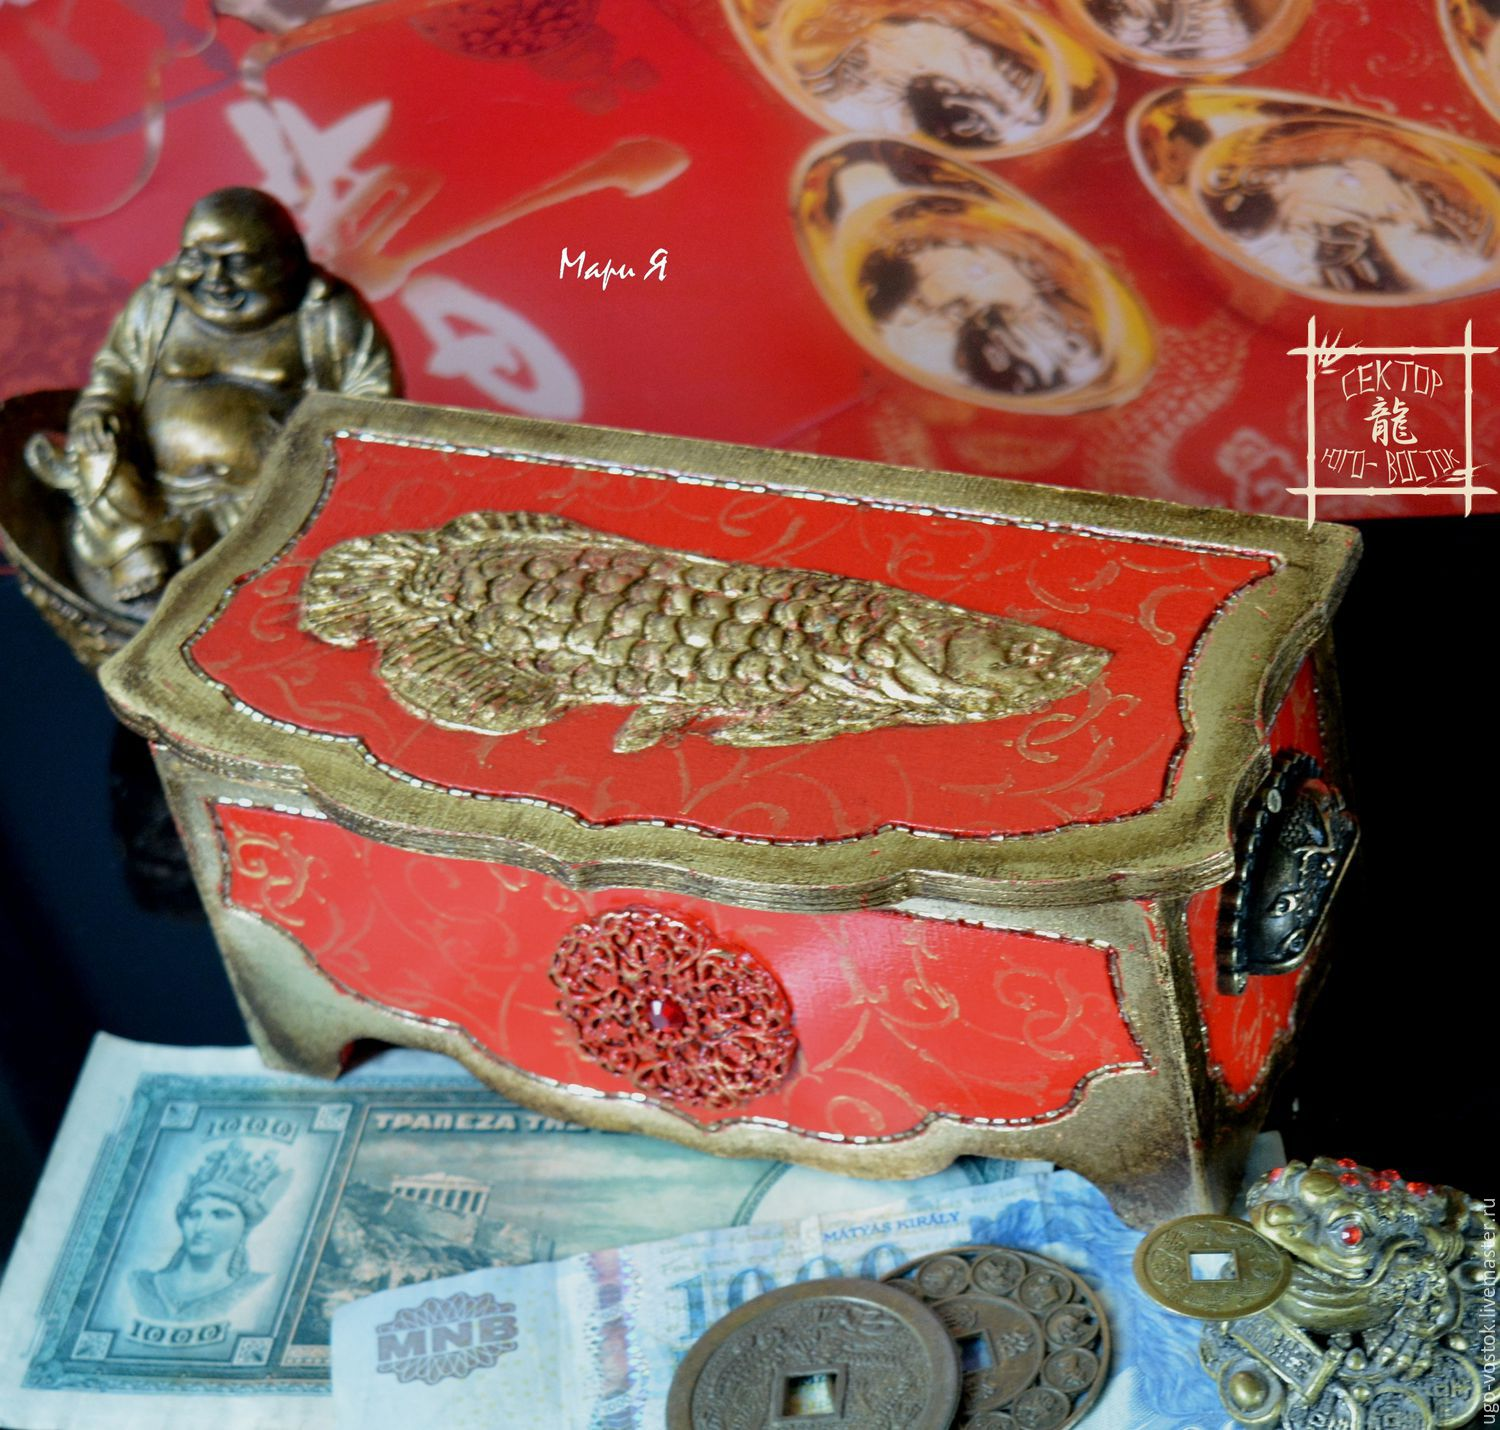 Box of money arowana feng shui gifts feng shui shop online on box money character wealth how to attract money luck for money money wealth reviewsmspy